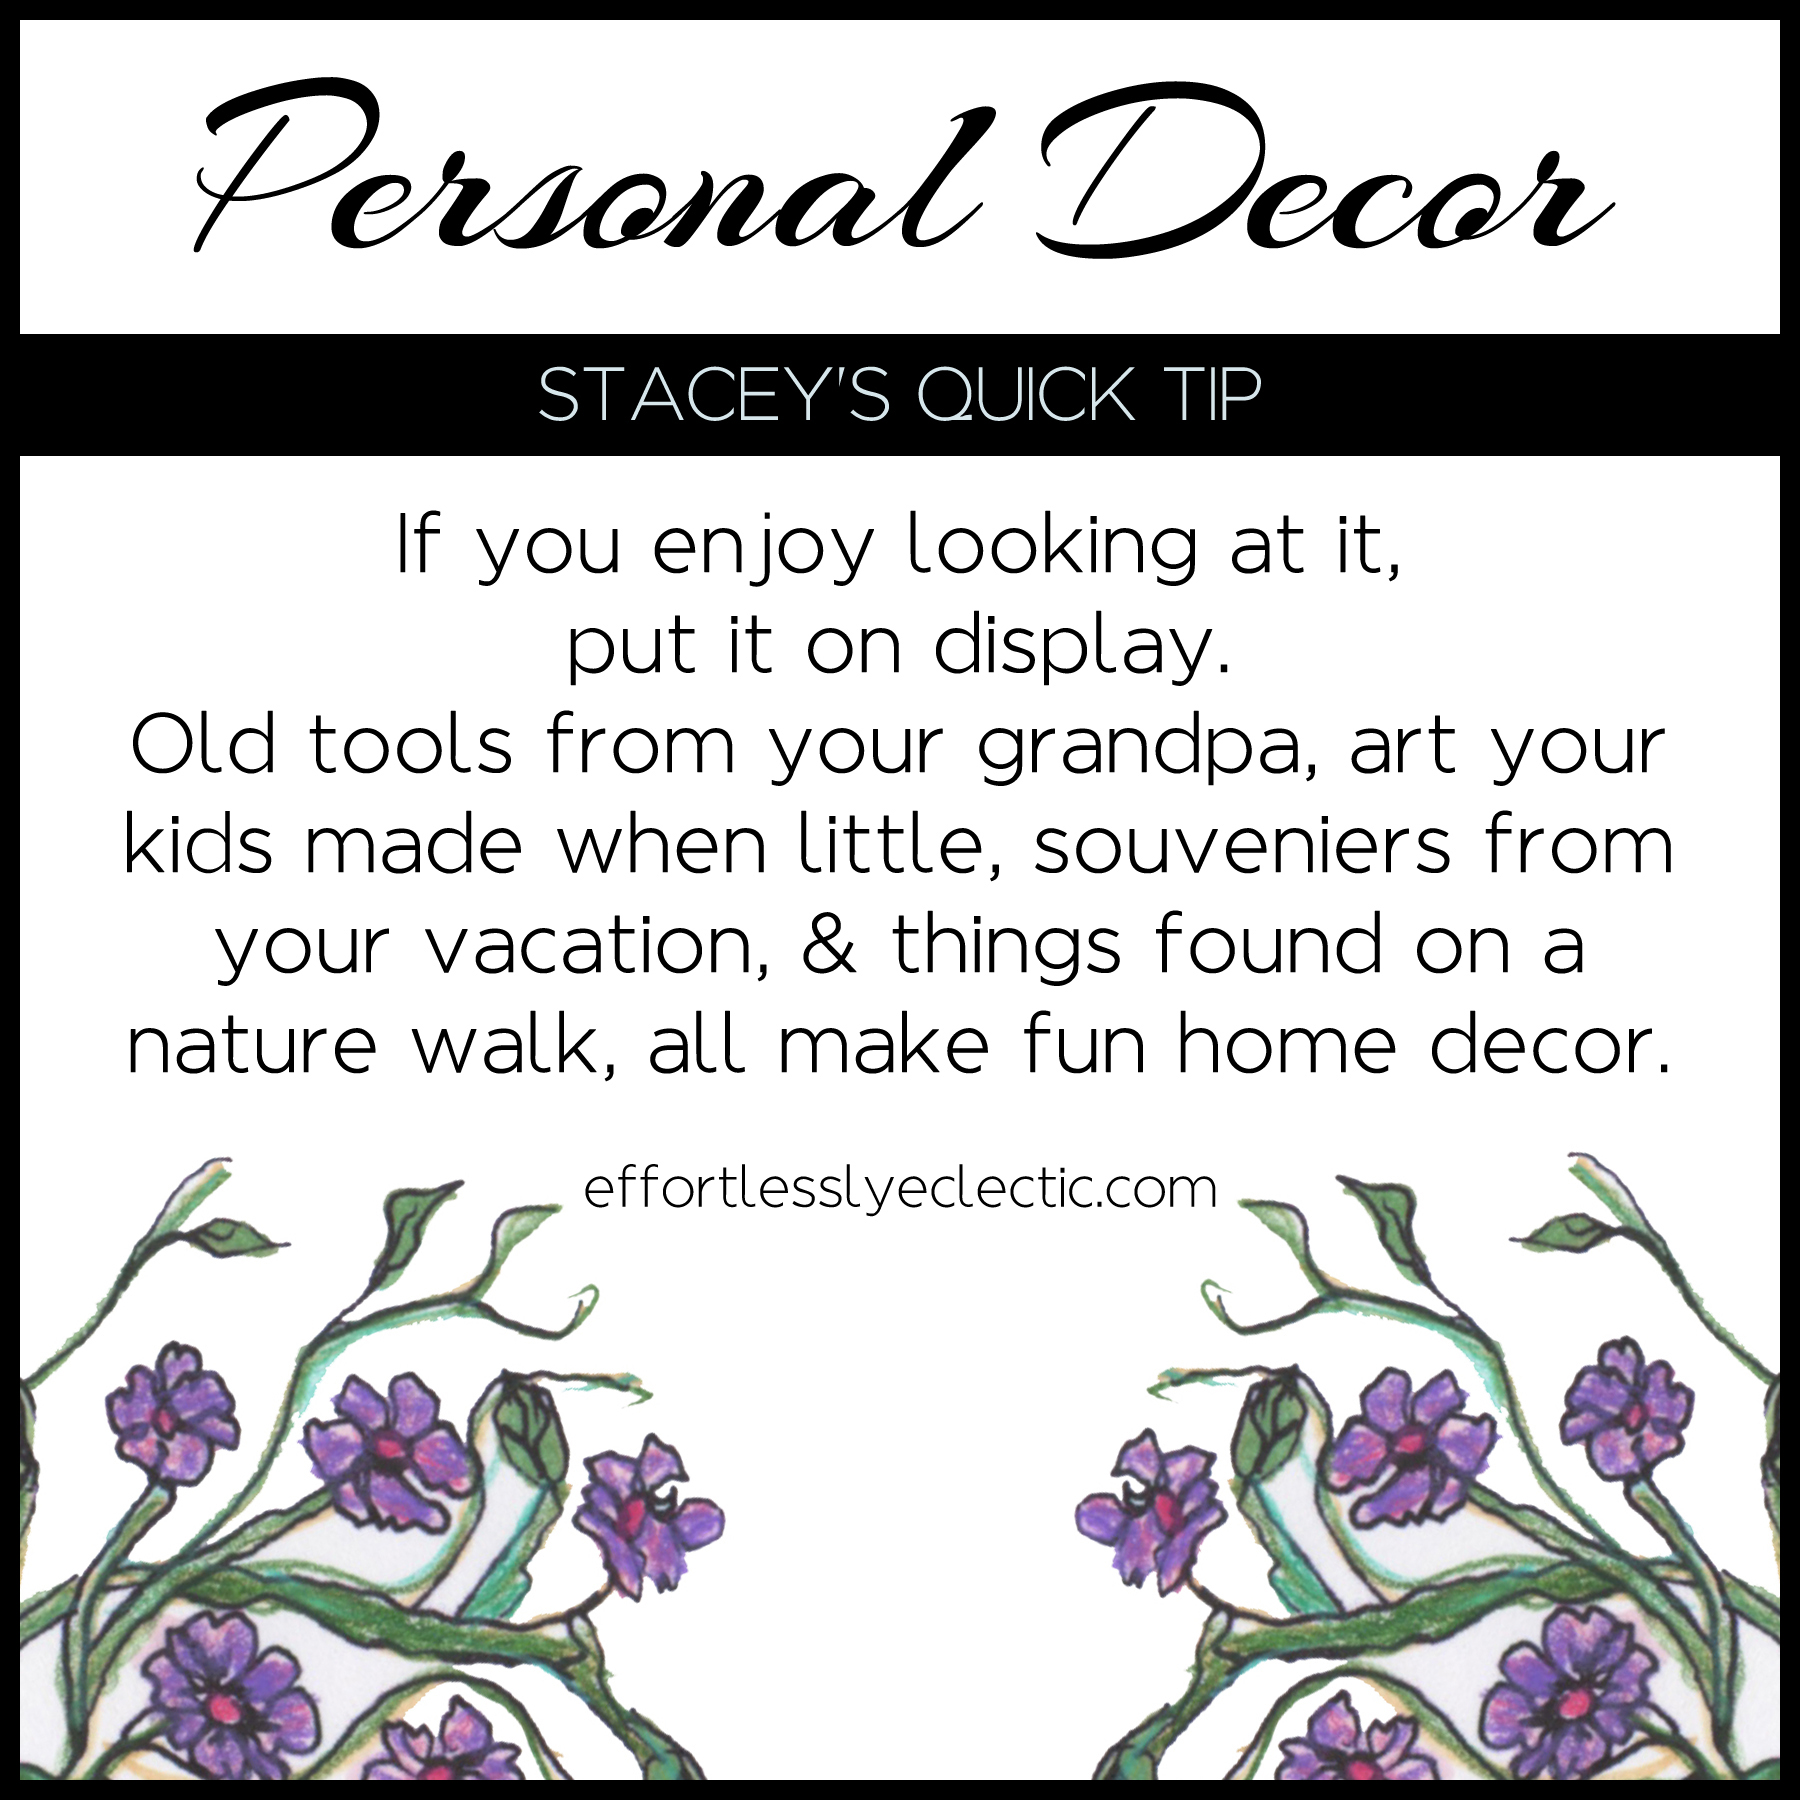 Personal Decor - A home decorating tip about how to personalize your home decor